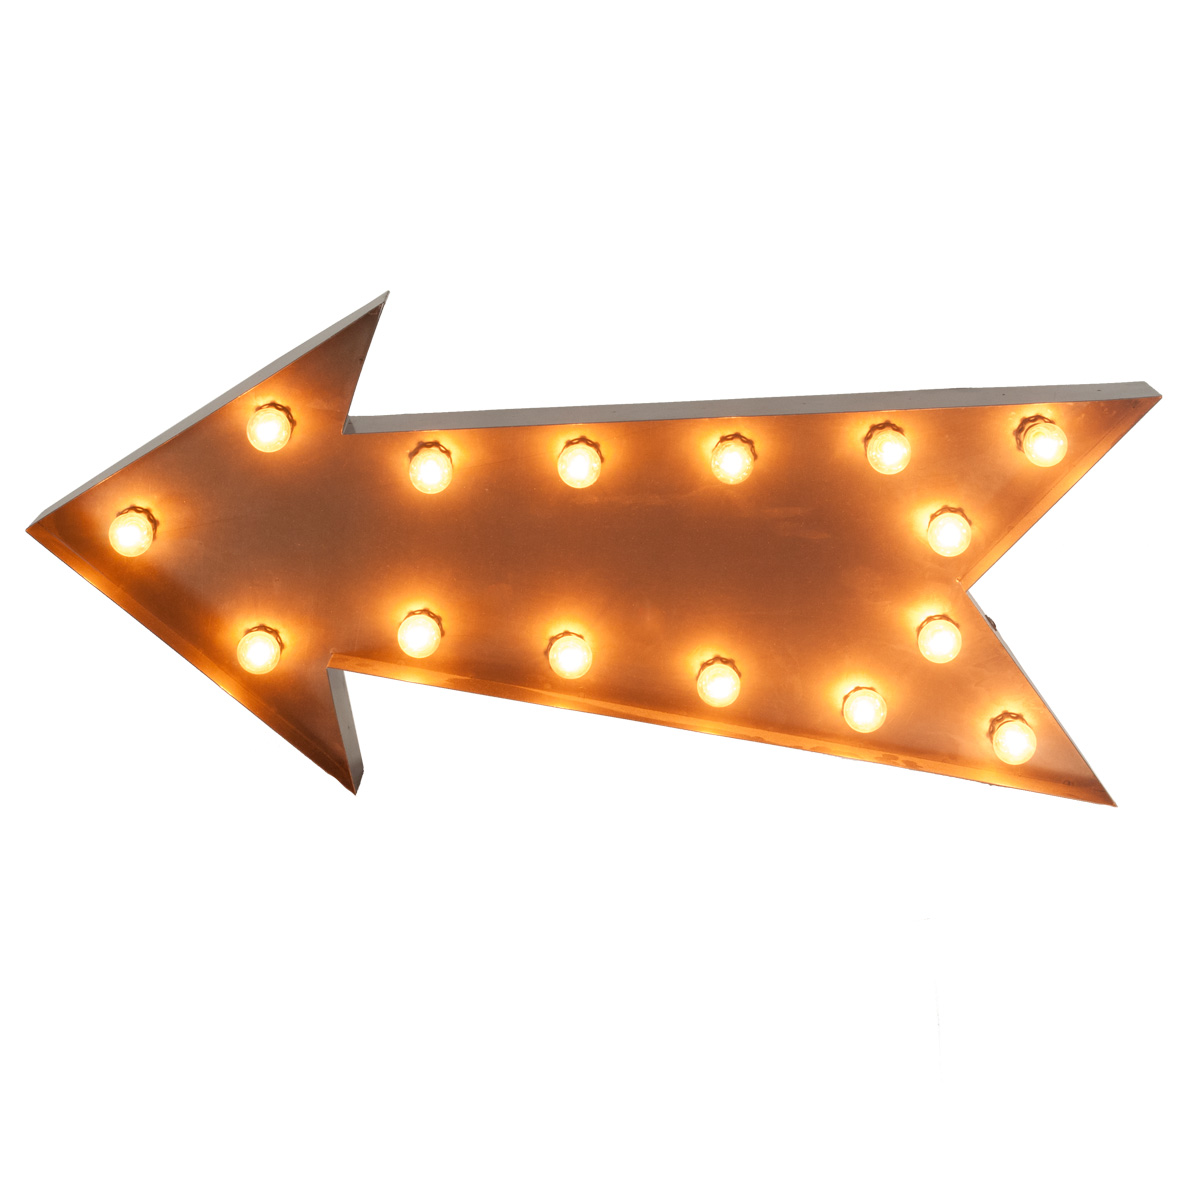 New Sign - Lighted Bar - Celebrations! Party Rentals KY79